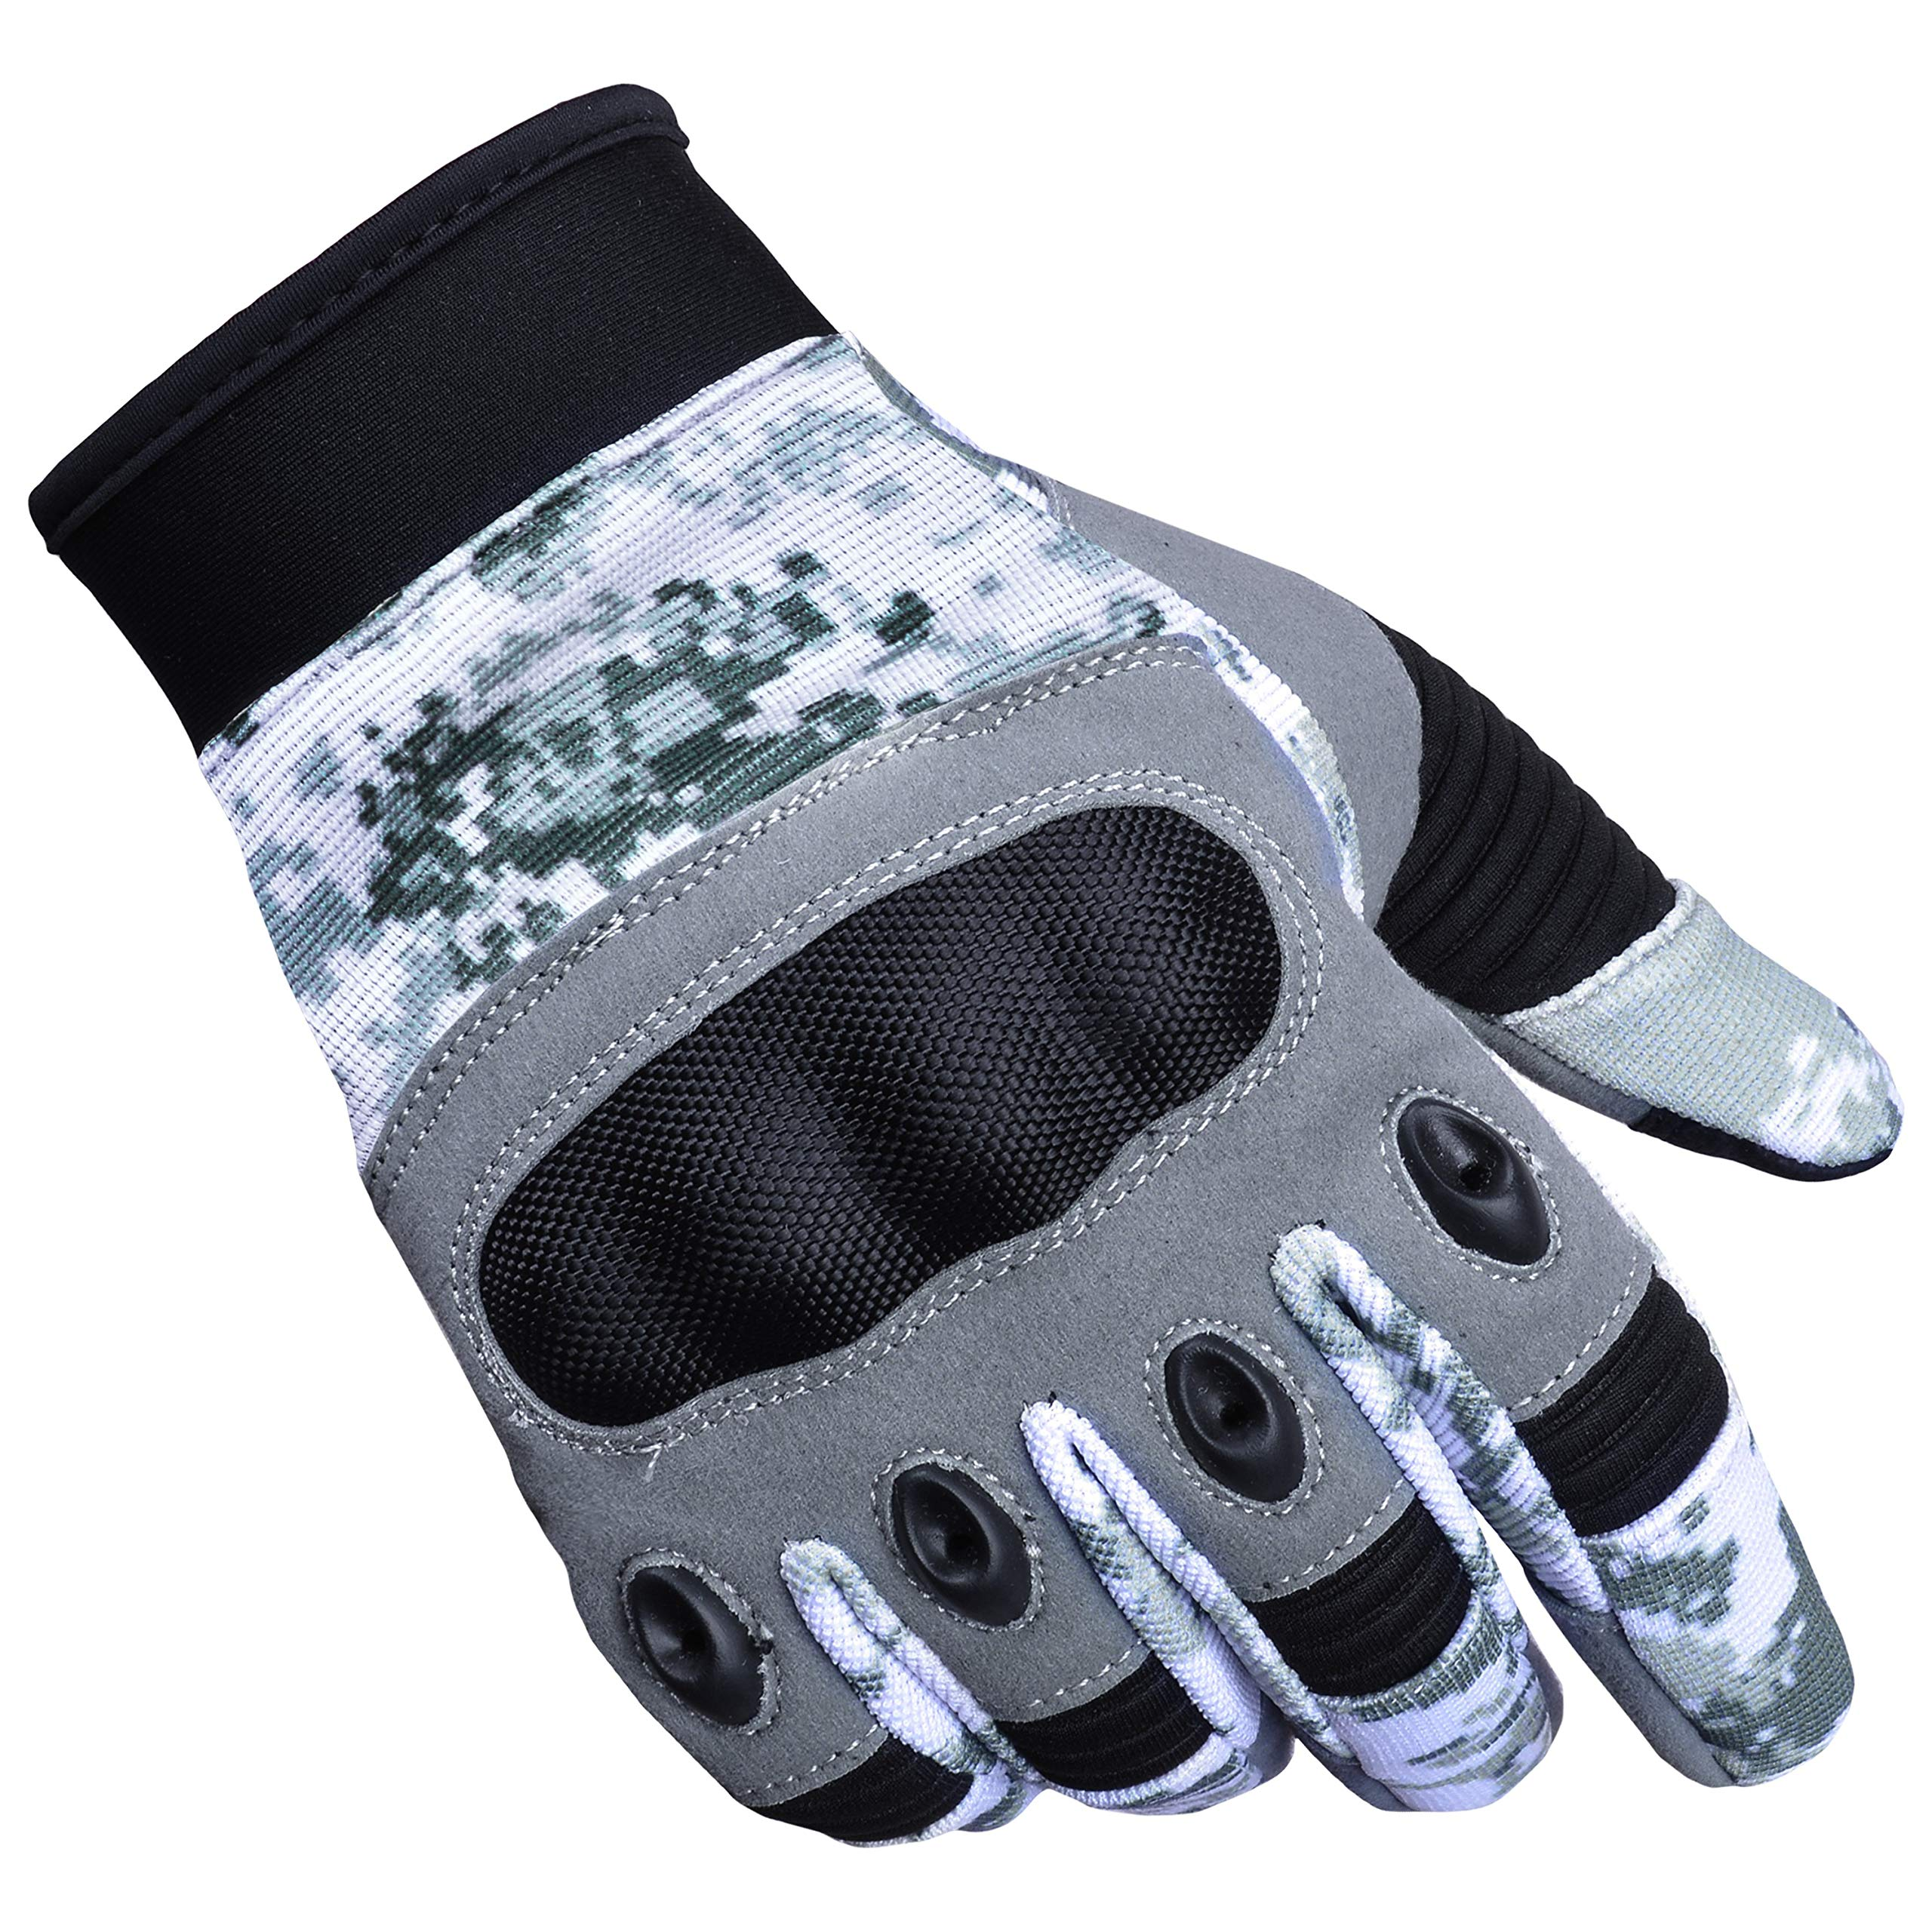 Zimco Cycle Wear Protective Hard Knuckle Touch Screen Gloves Cycling Motorcycle Tactical Gloves for Shooting, Hunting, Hiking, Paintball, Motorbike, Safety, Working Sports Gloves (Grey Camo, Medium) by Zimco Cycle Wear